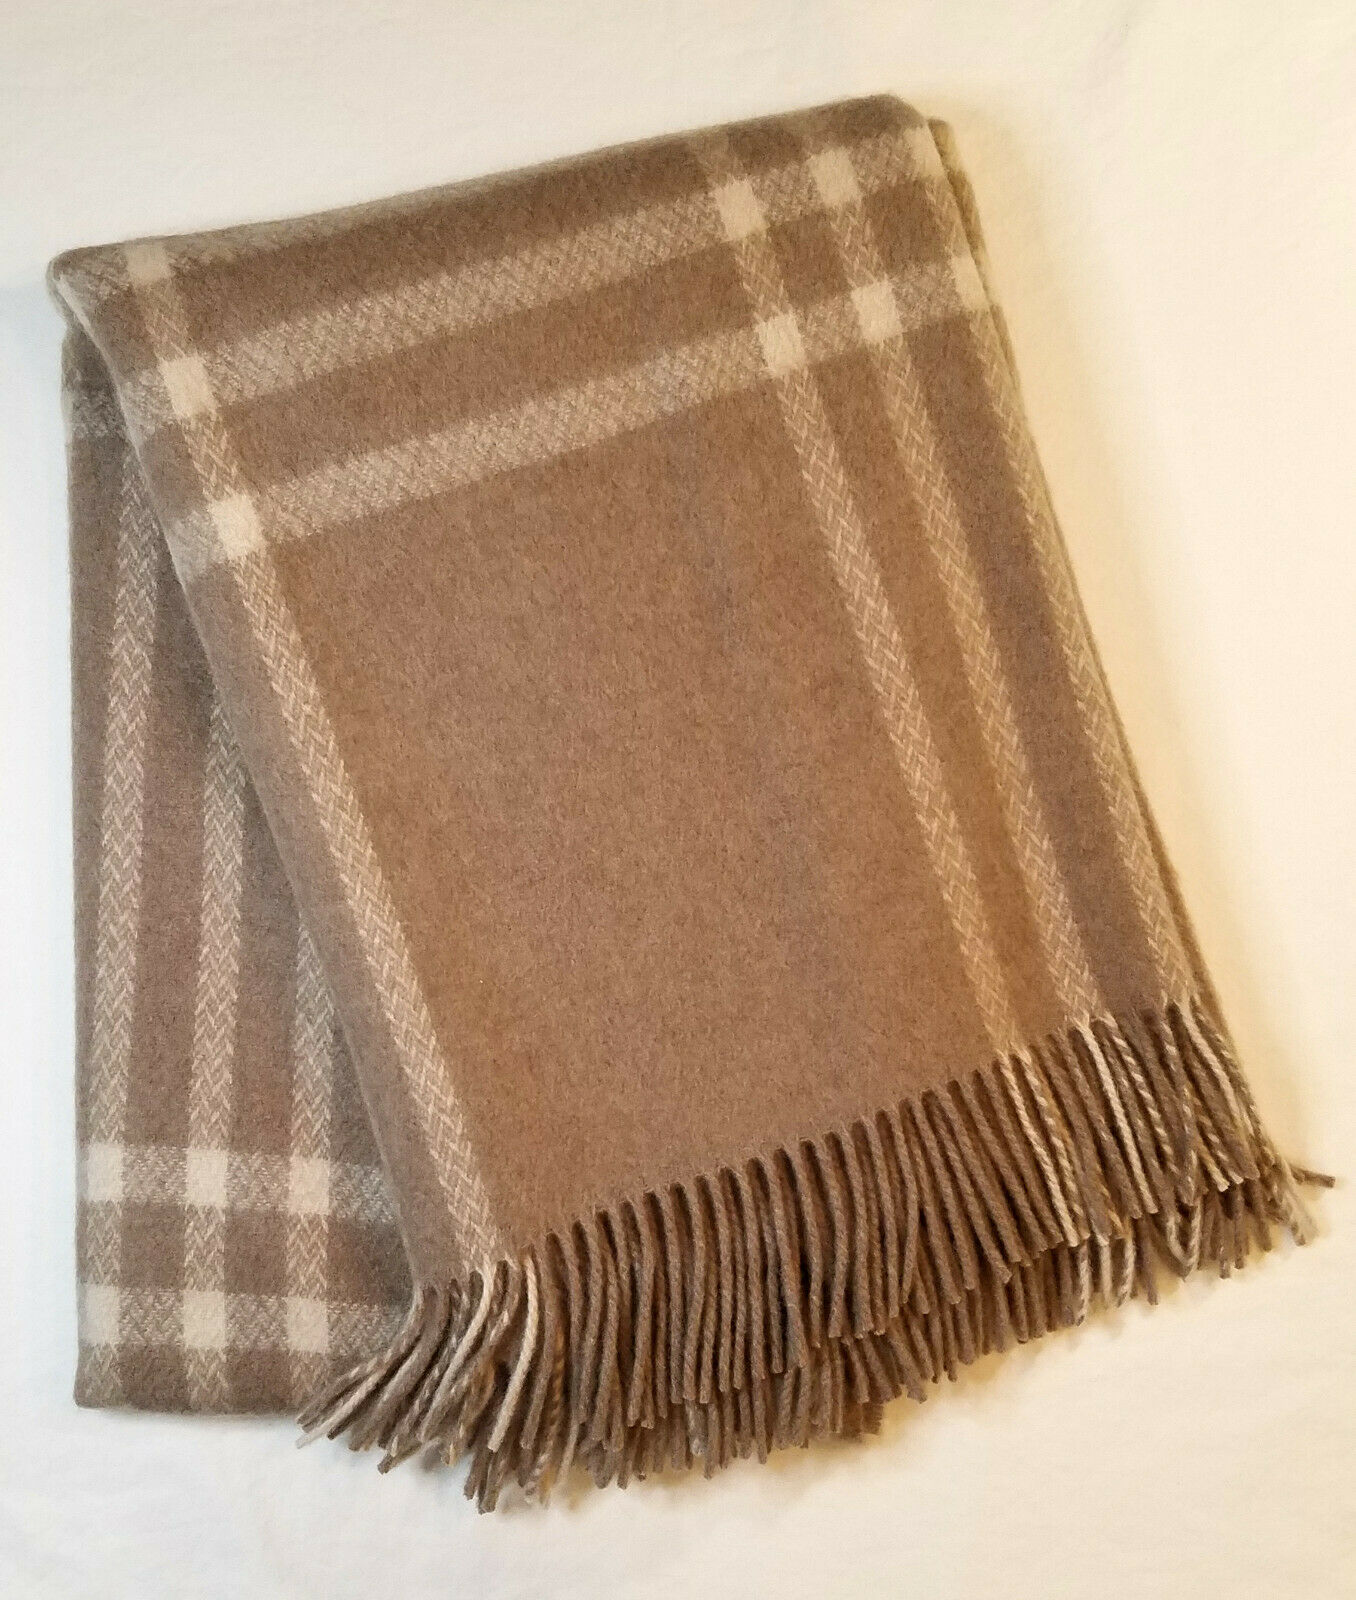 Eagle Products - 100% Cashmere Throw Blanket - Made in Germany